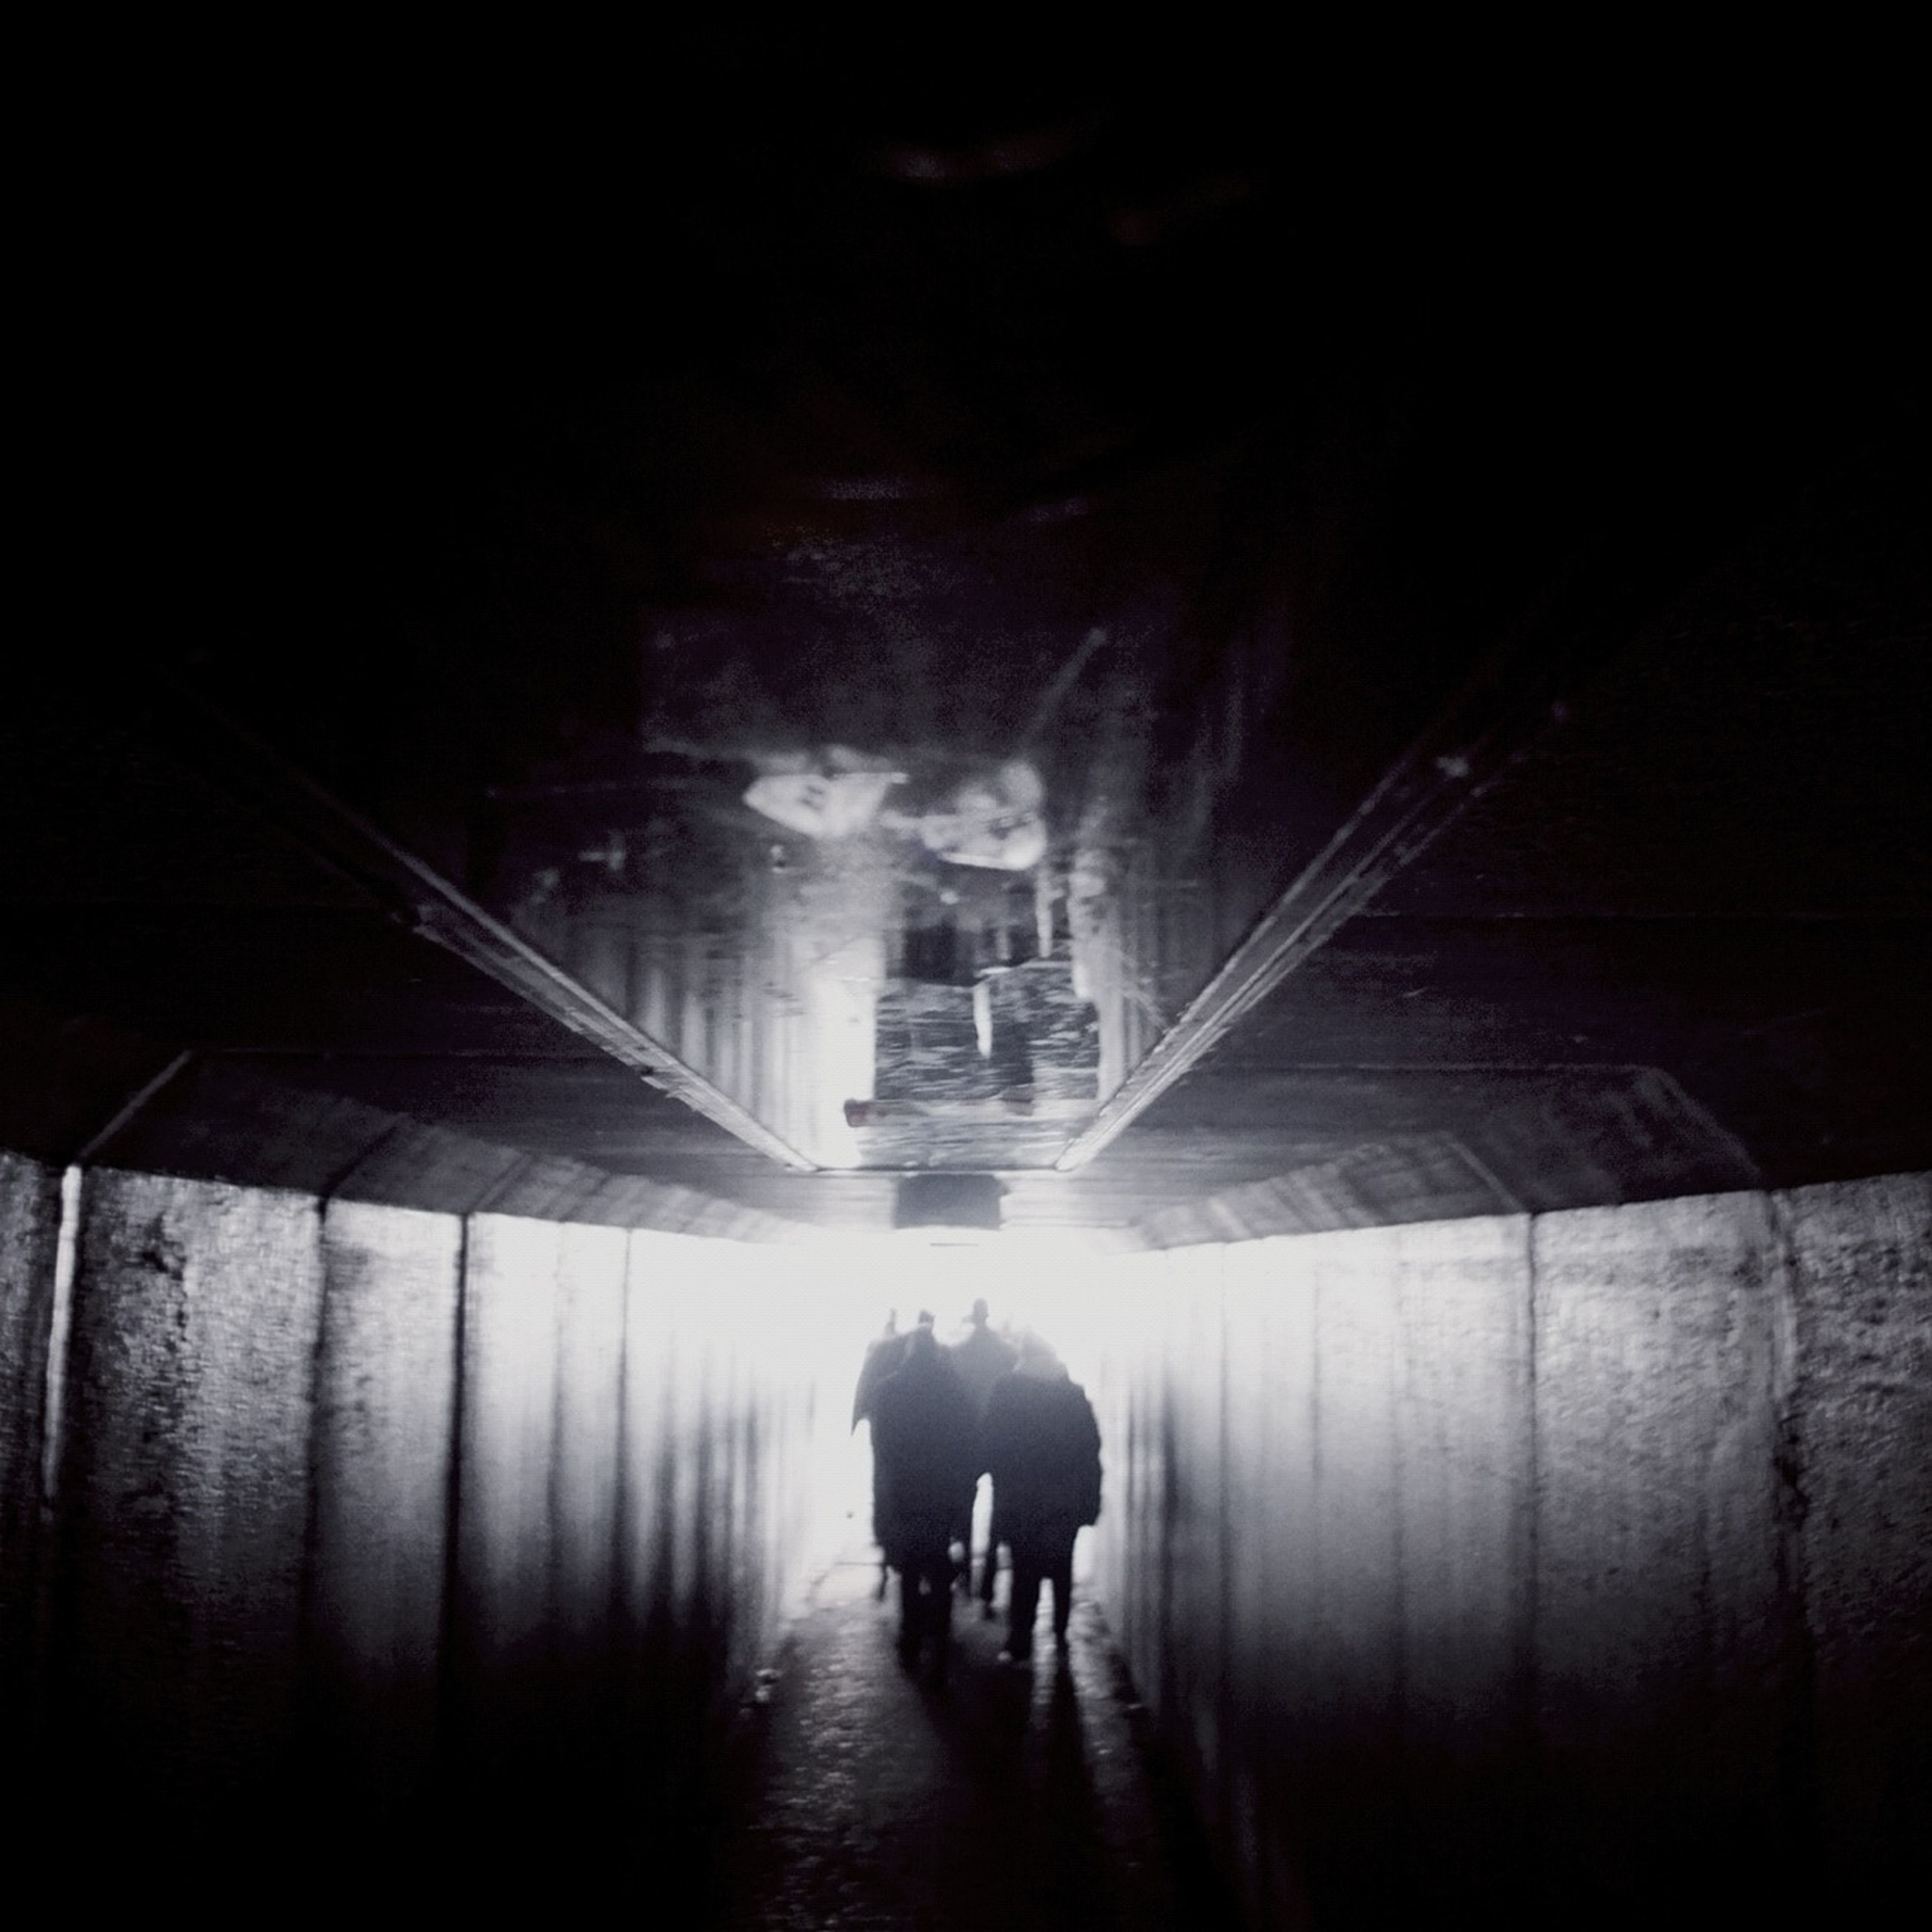 walking, architecture, rear view, men, lifestyles, full length, the way forward, built structure, indoors, tunnel, leisure activity, person, illuminated, building exterior, diminishing perspective, night